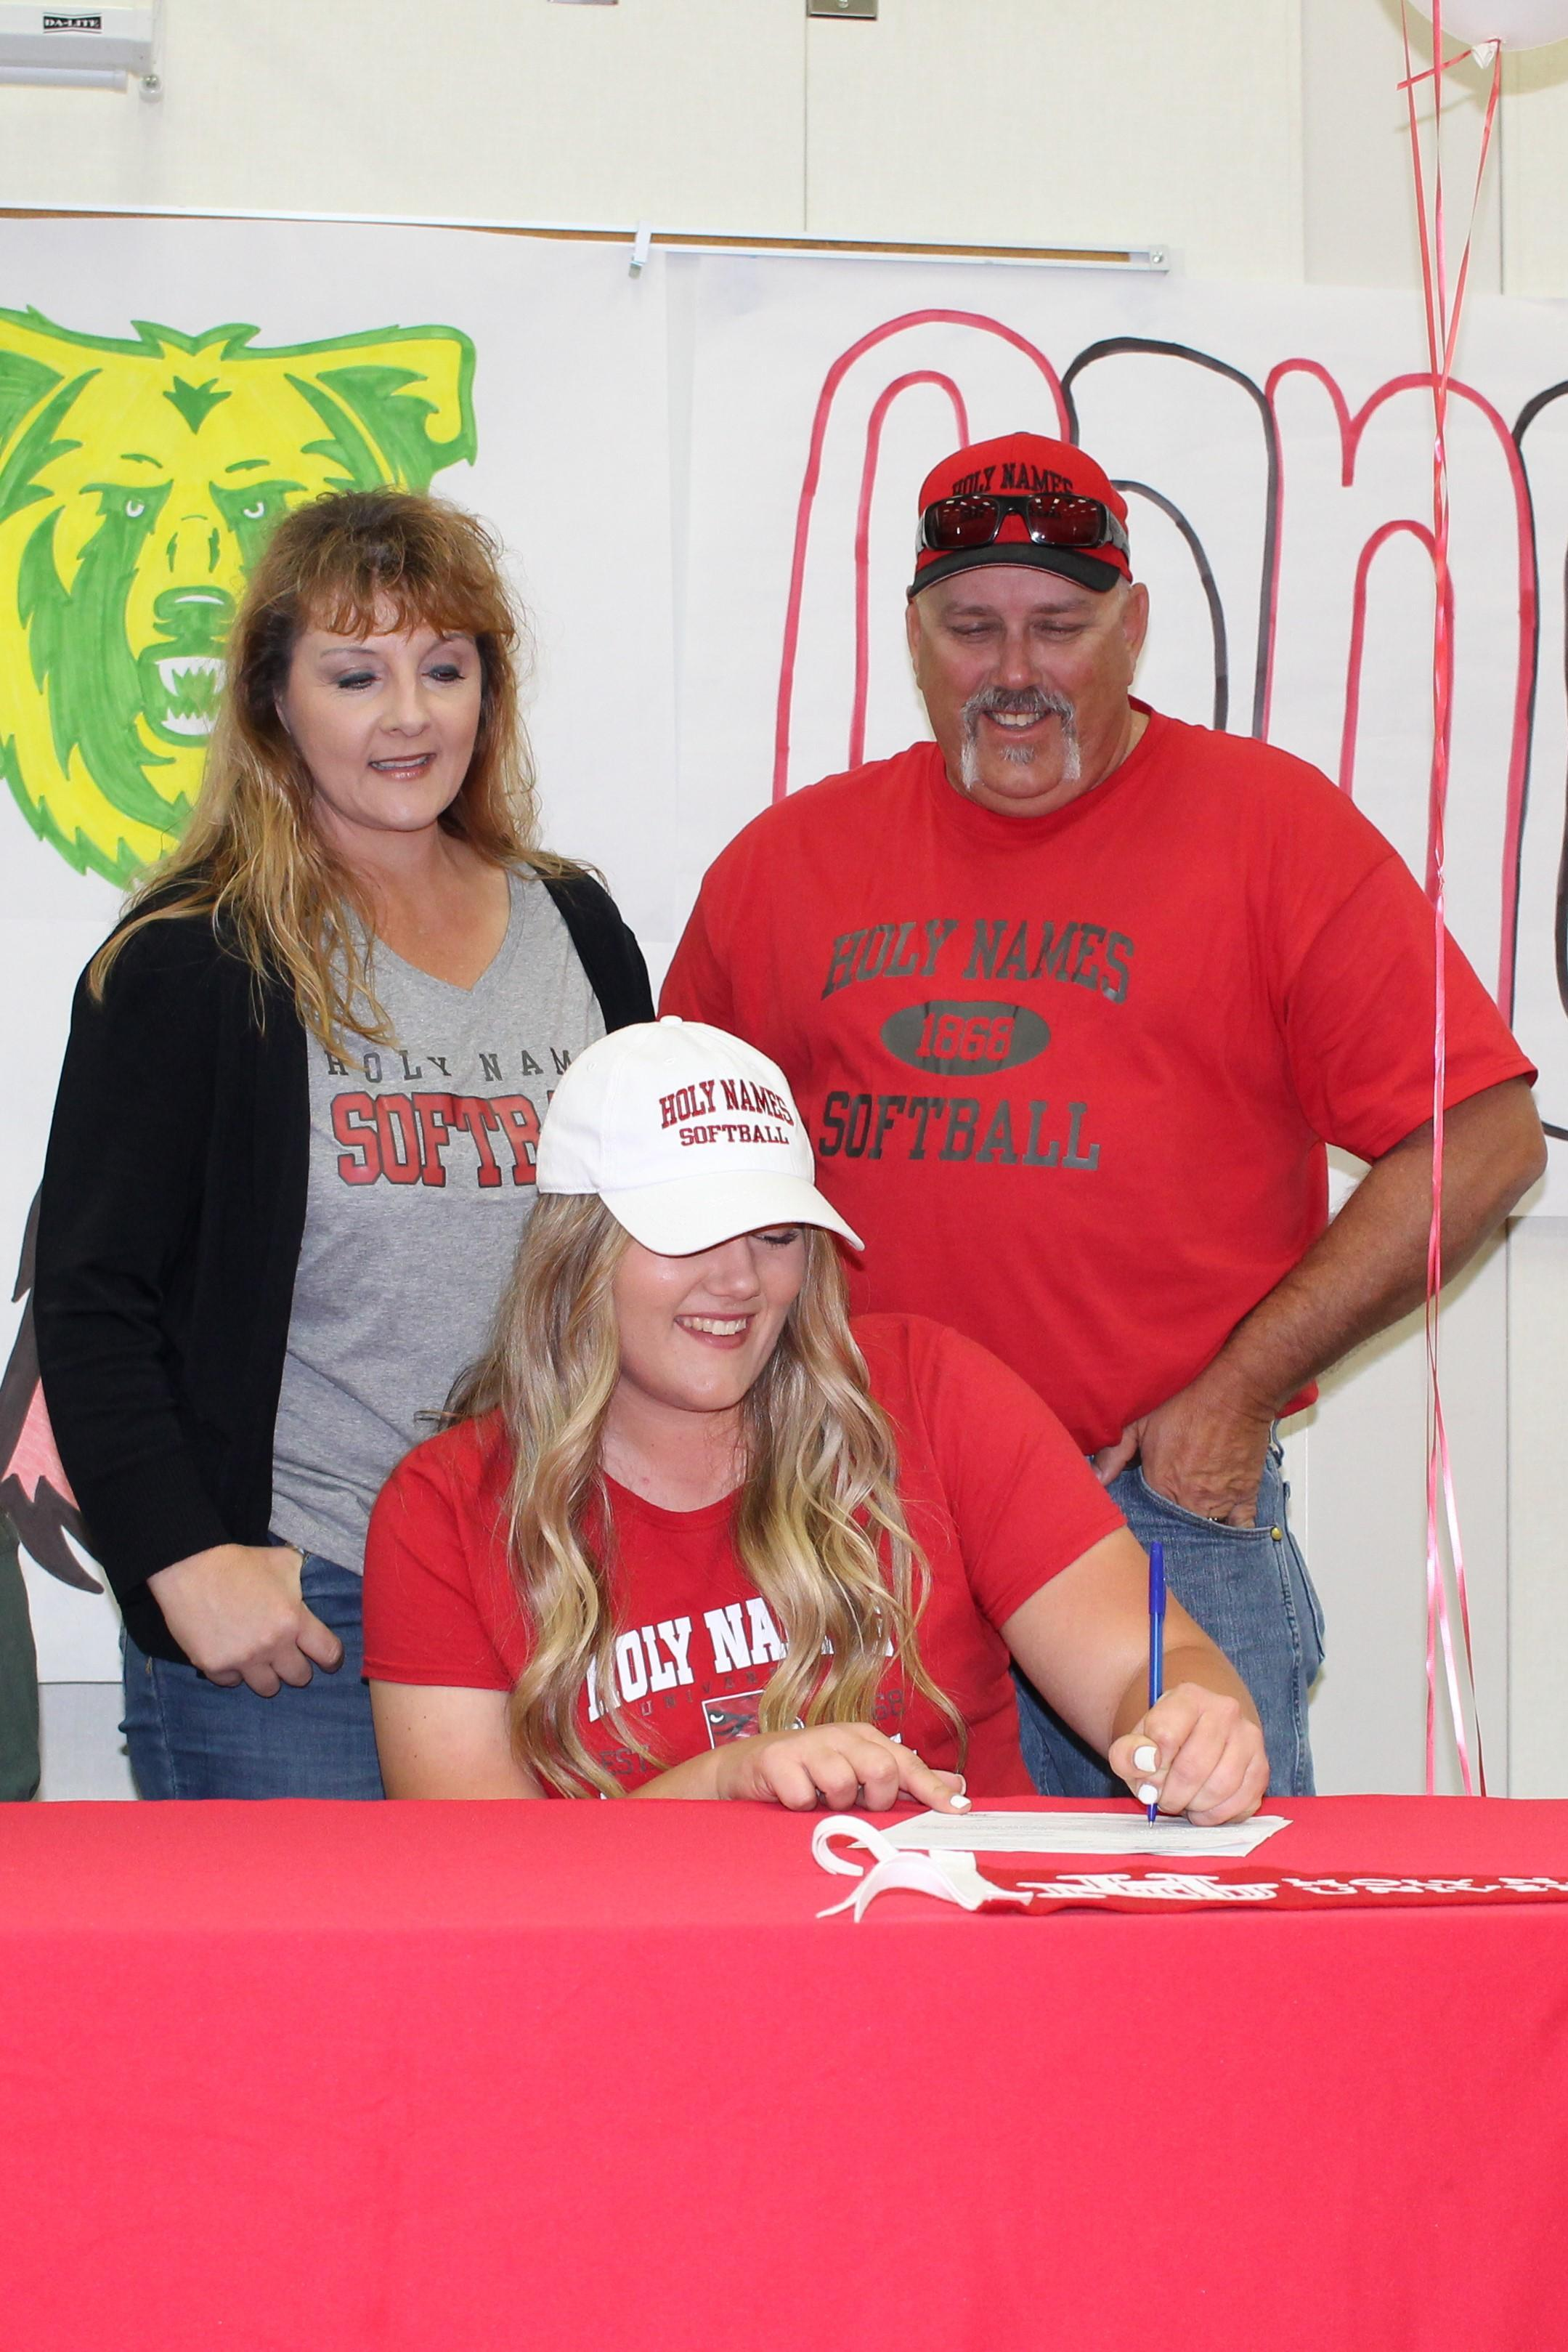 Kelsey Volkmar signs her National Letter of Intent to Attend Holy Names University in Oakland, California to play Softball.